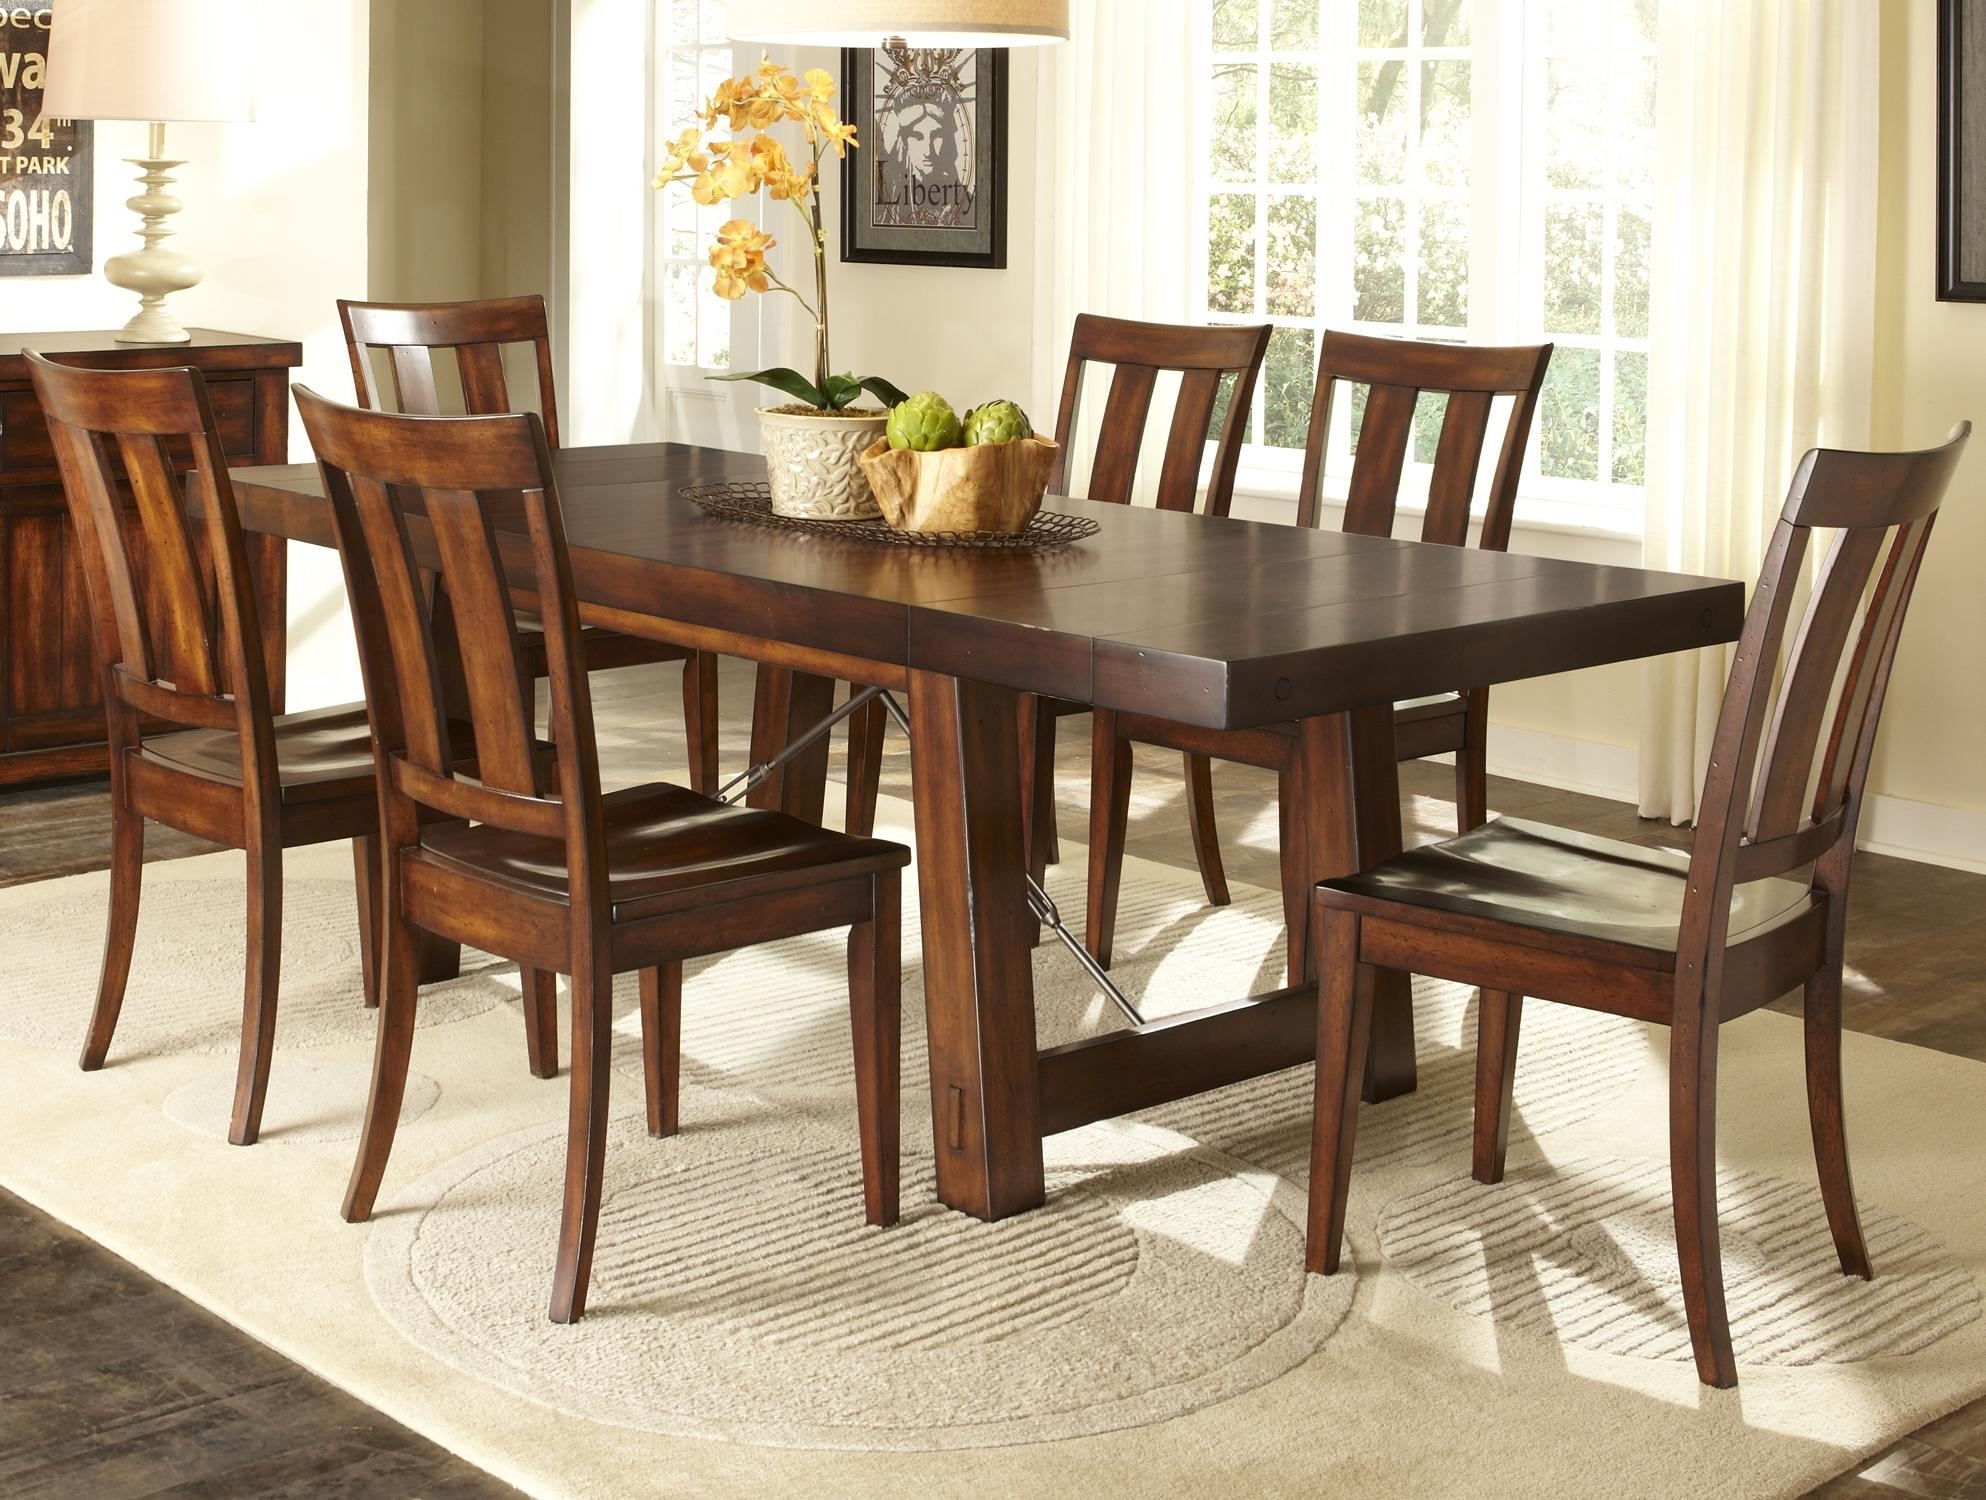 7 Piece Dining Room Set | Design Builders Throughout Most Popular Jaxon 7 Piece Rectangle Dining Sets With Upholstered Chairs (Image 3 of 20)